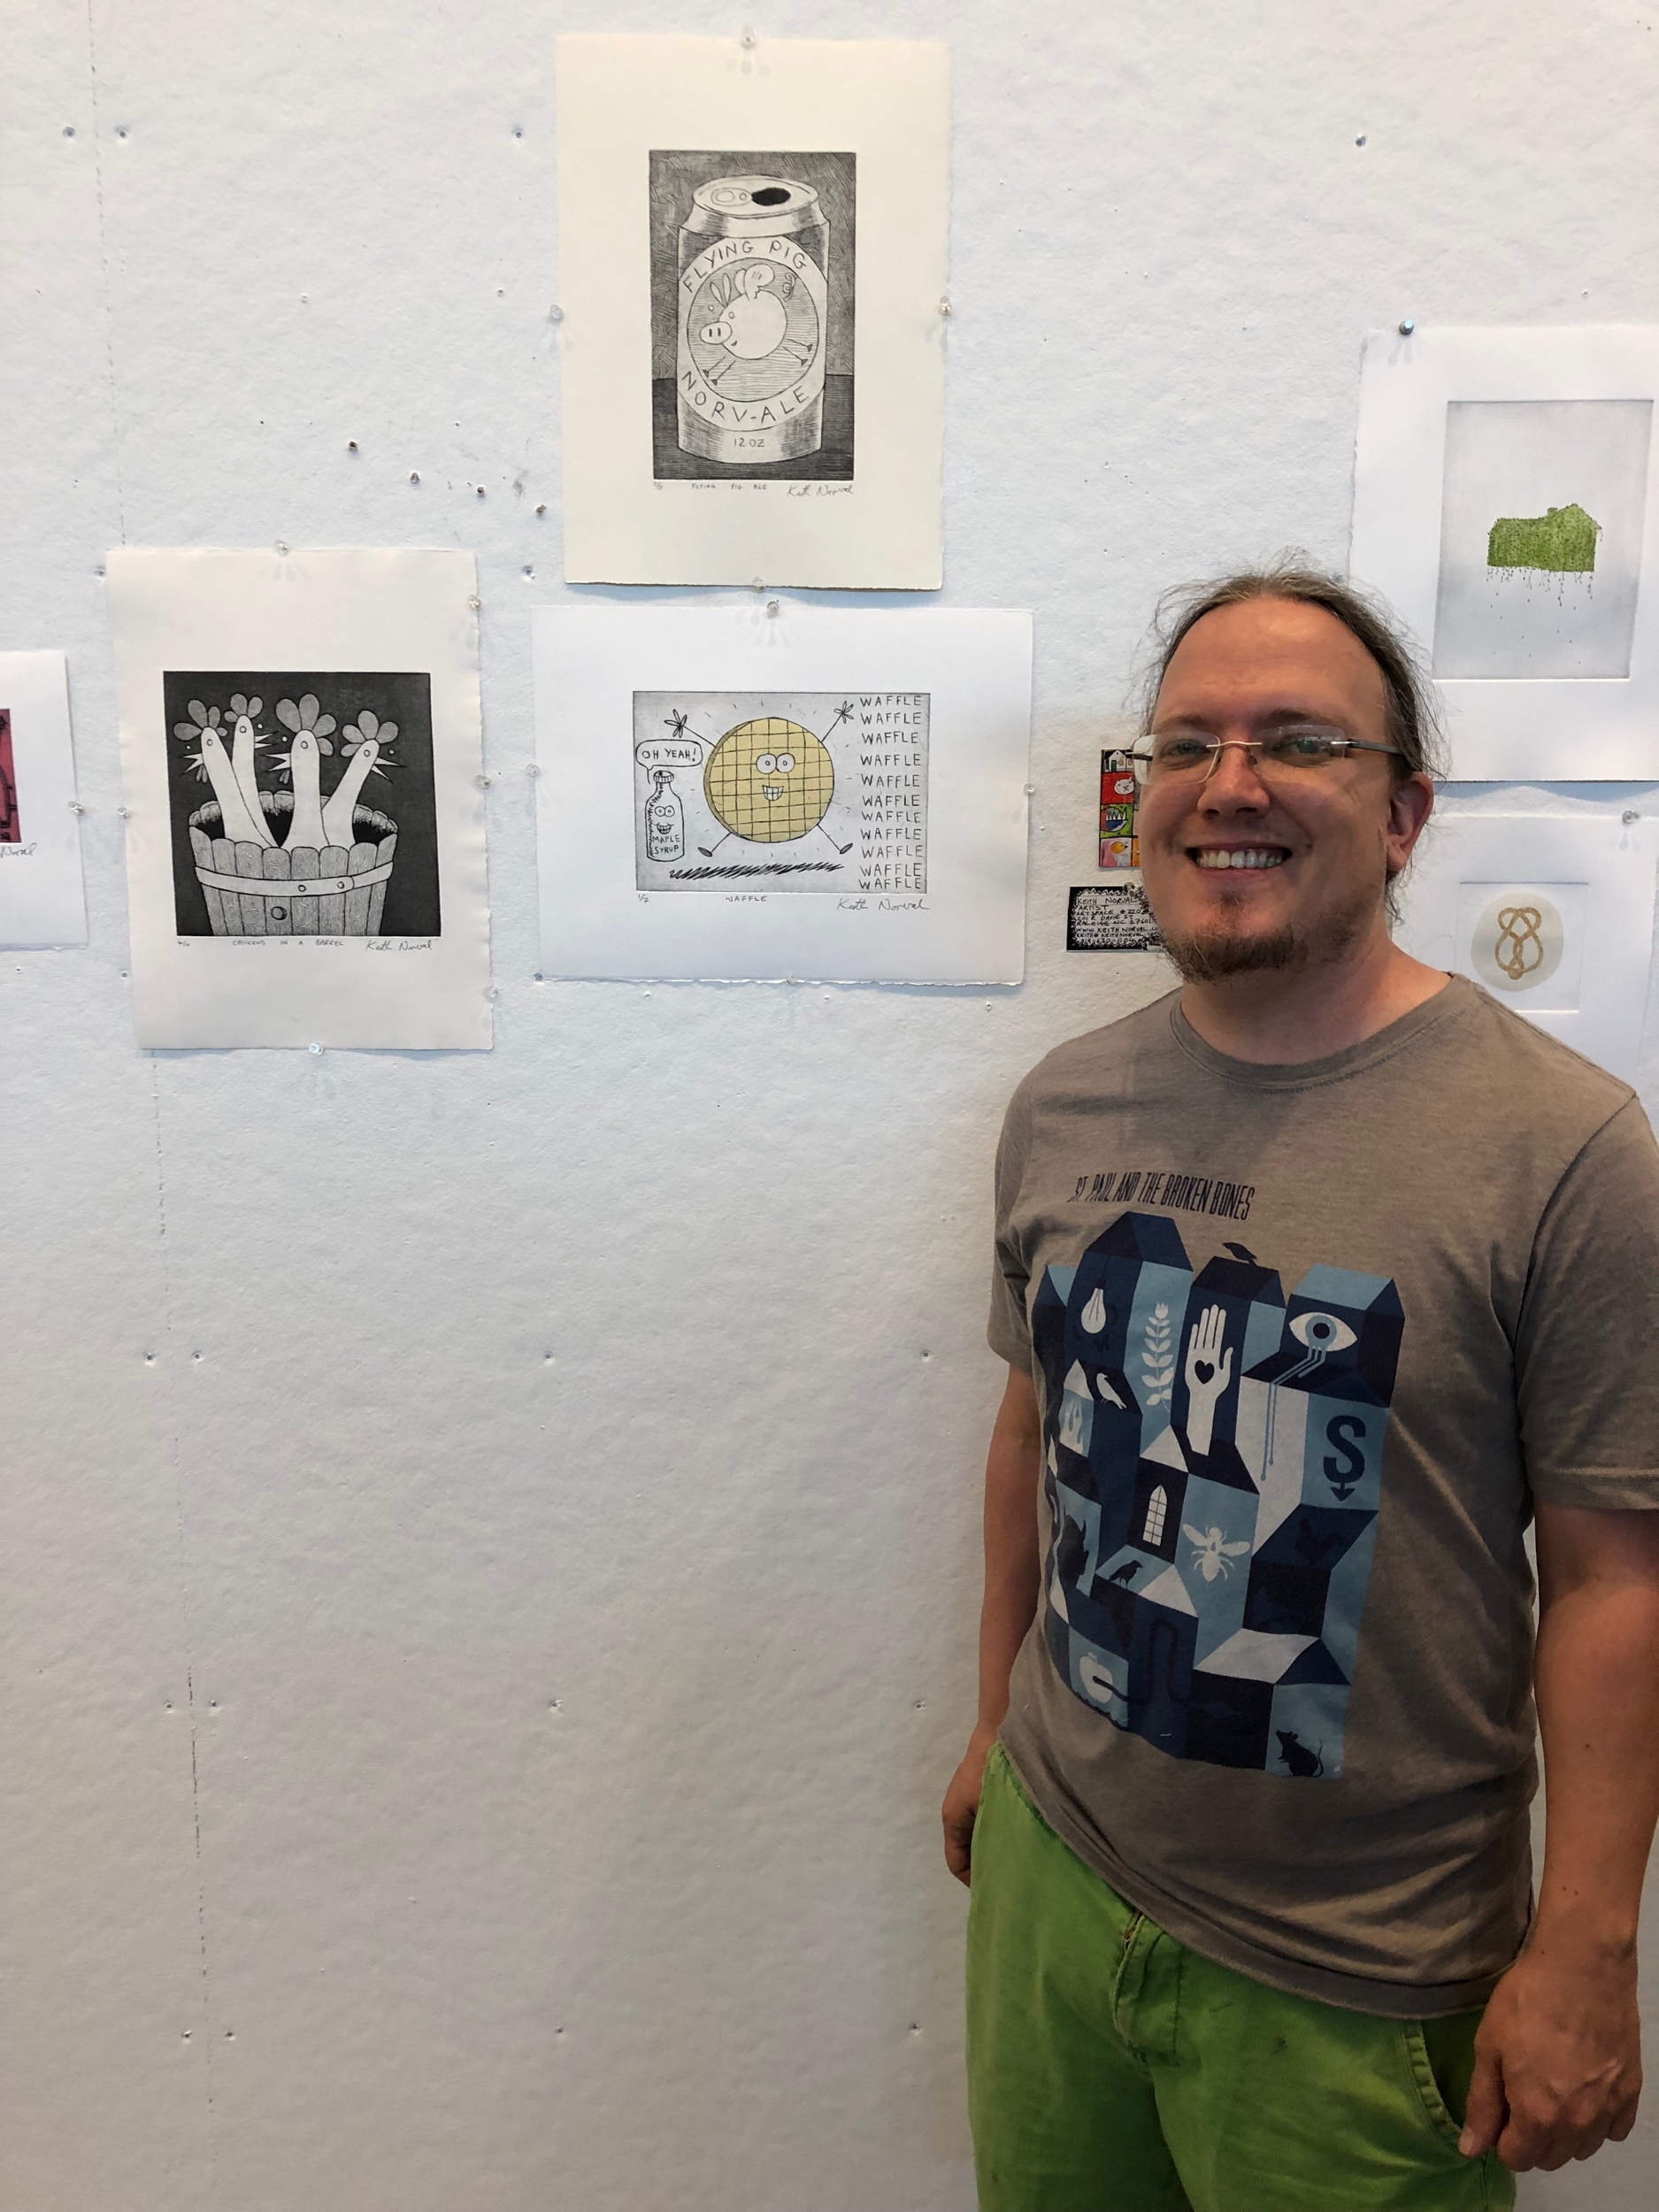 My finished prints at the art show at Penland.